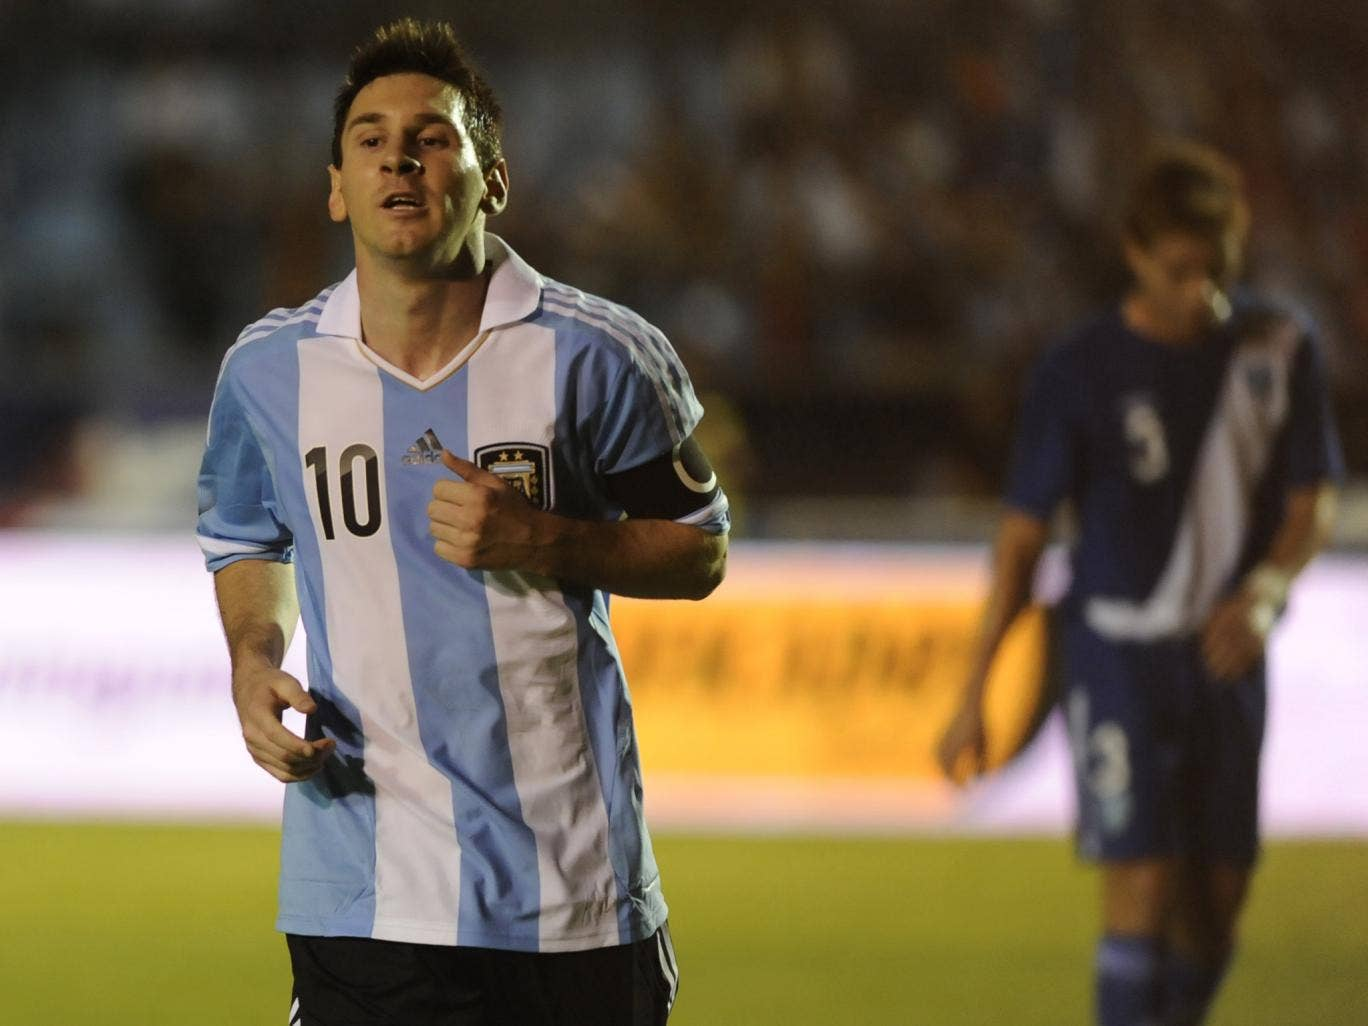 Lionel Messi scored a hat-trick in the 4-0 victory over Guatamala